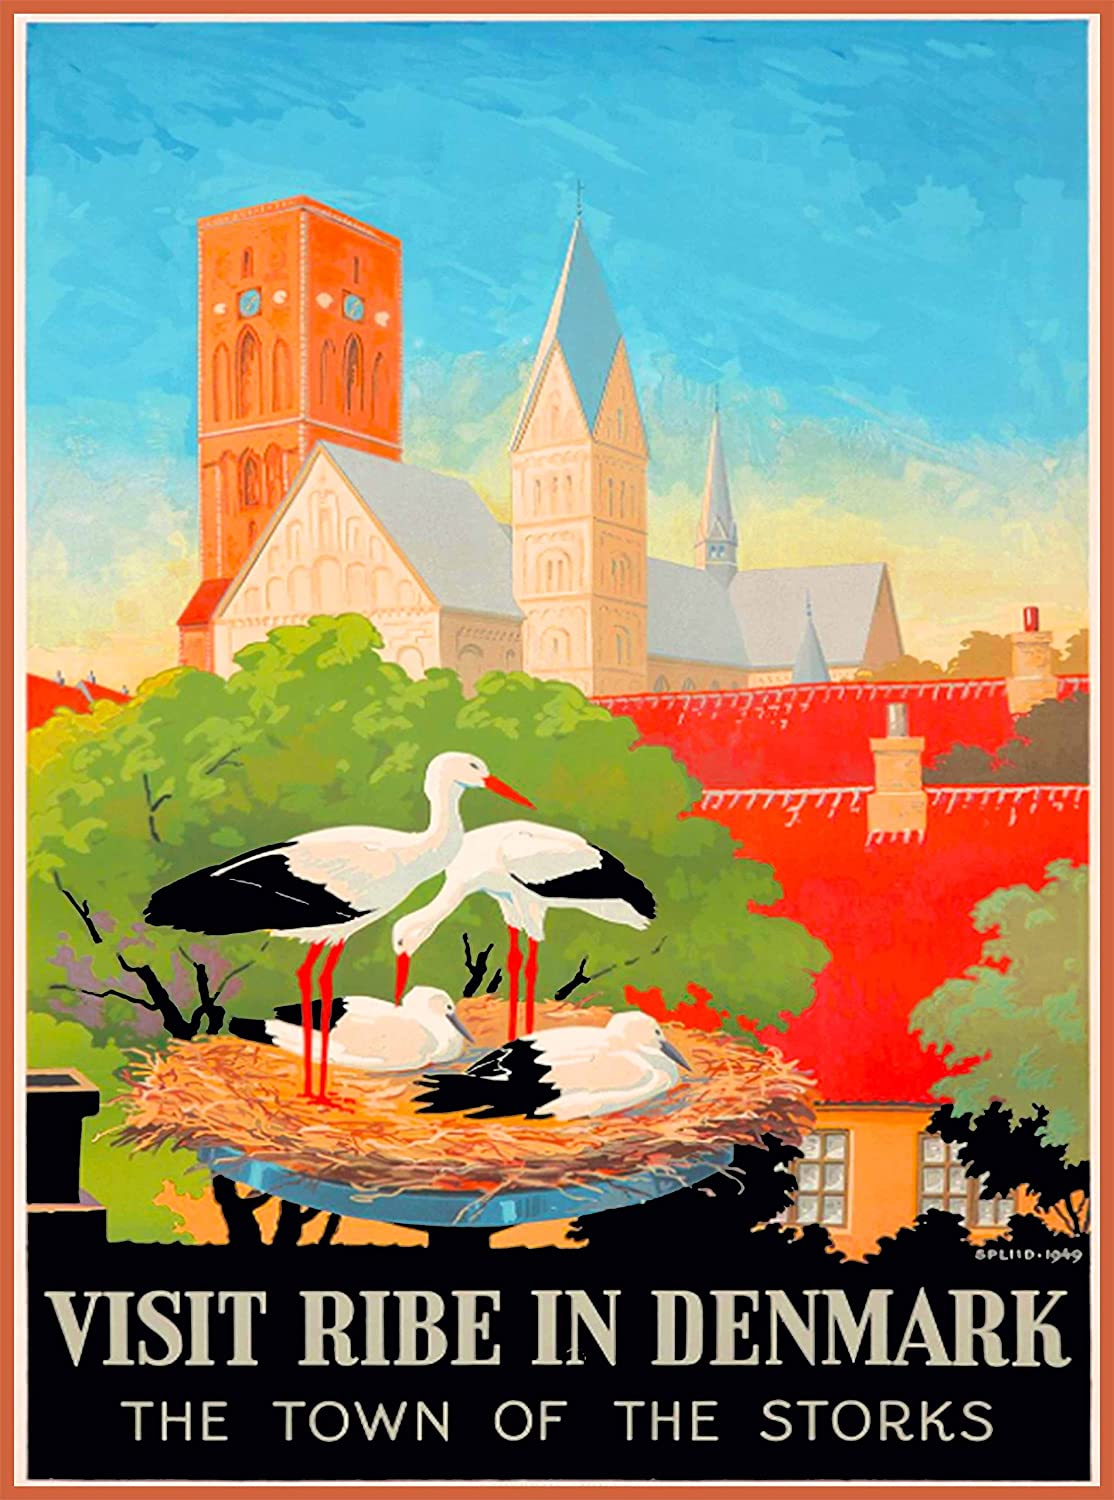 Visit Ribe in Denmark The Town of The Storks Danish Scandinavia Scandinavian Vintage Travel Home Collectible Wall Decor Advertisement Art Poster Print. Measures 10 x 13.5 inches.